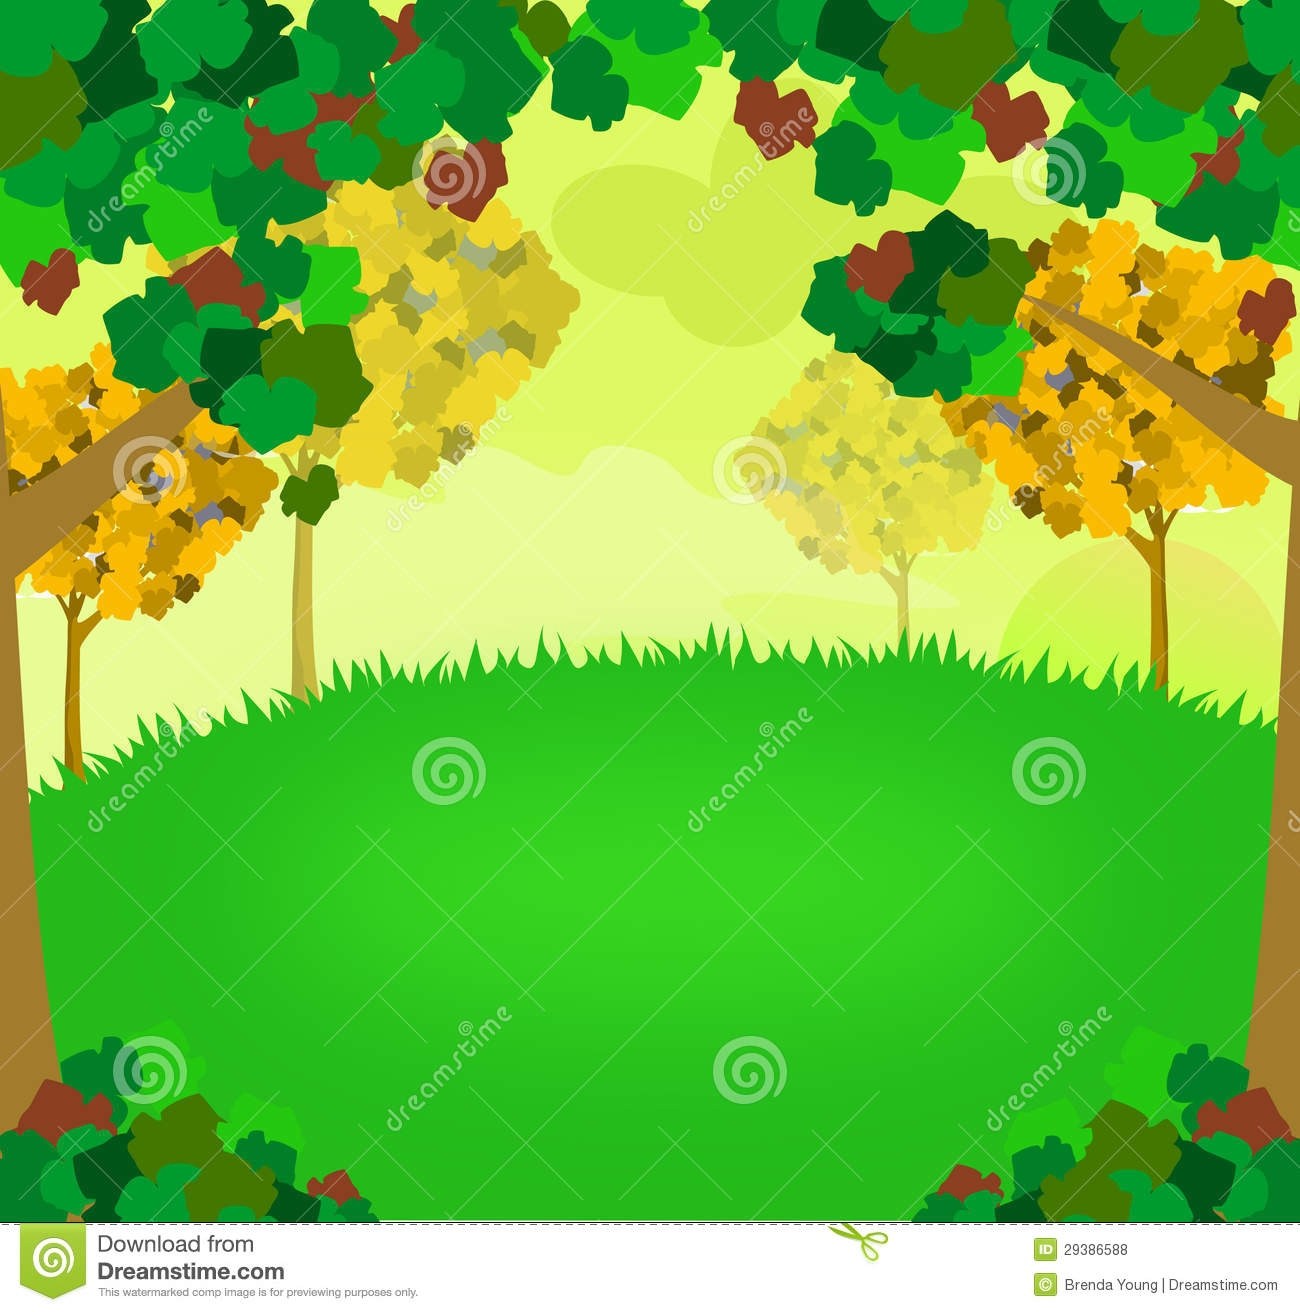 Nature Background Clipart.